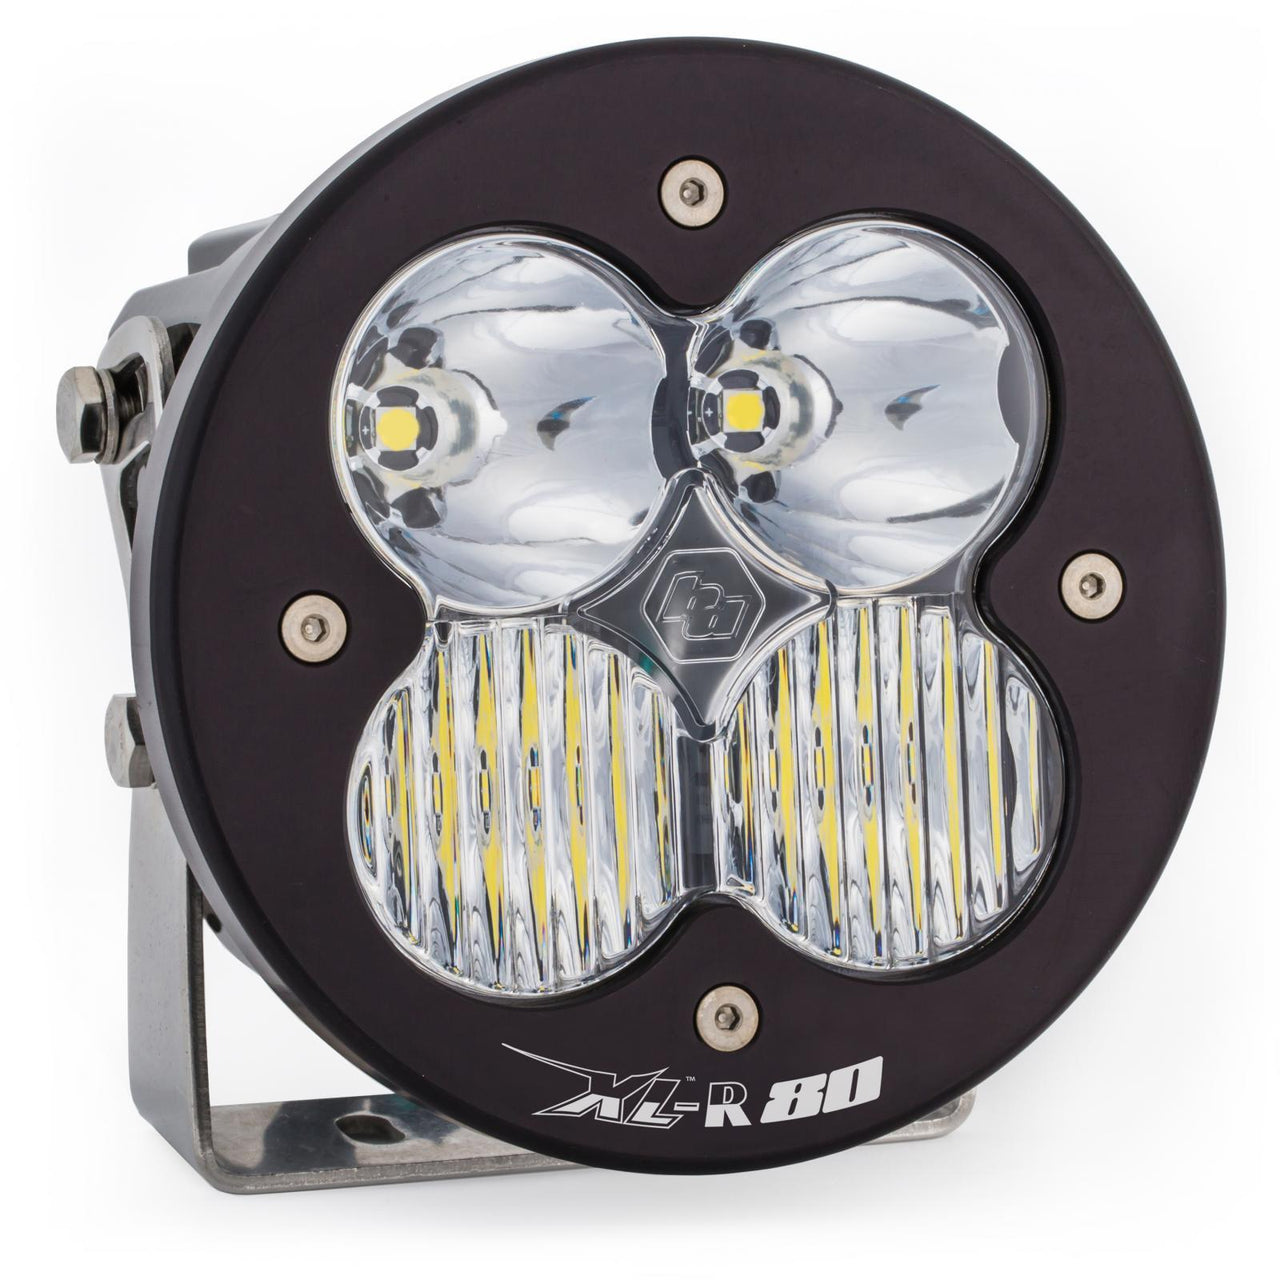 LED Light Pods Clear Lens Spot Pair XL R 80 Driving/Combo Baja Designs